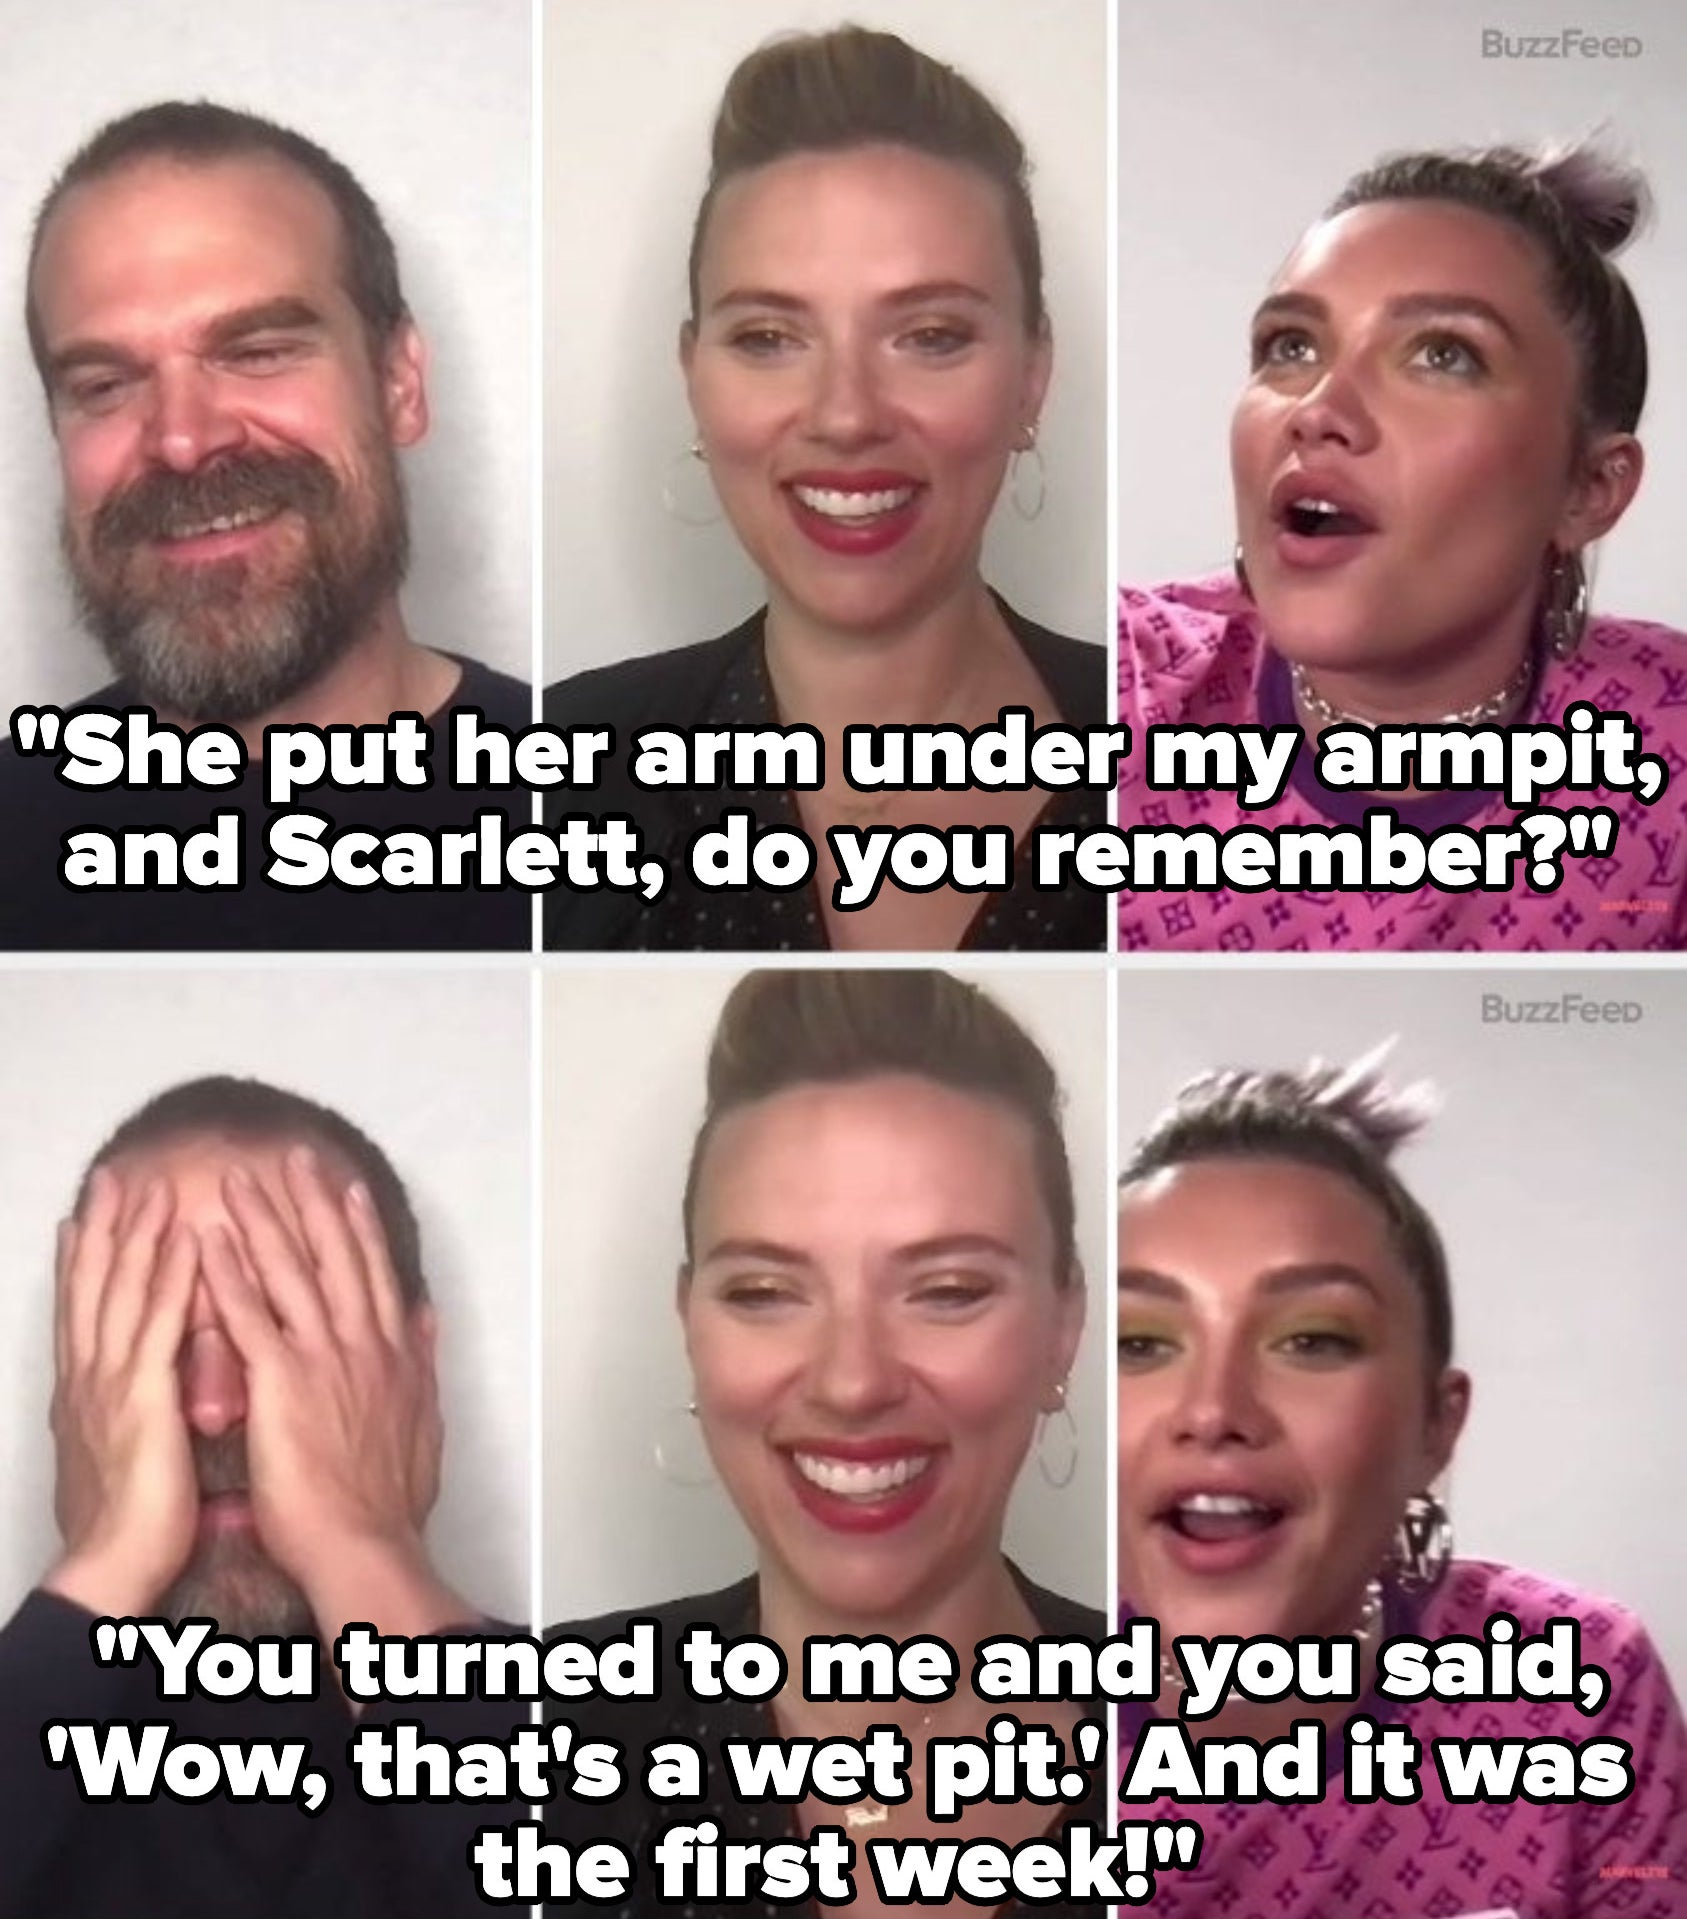 Florence, speaking with Scarlett and David Harbour: She put her arm under my armpit and said wow that's a wet pit